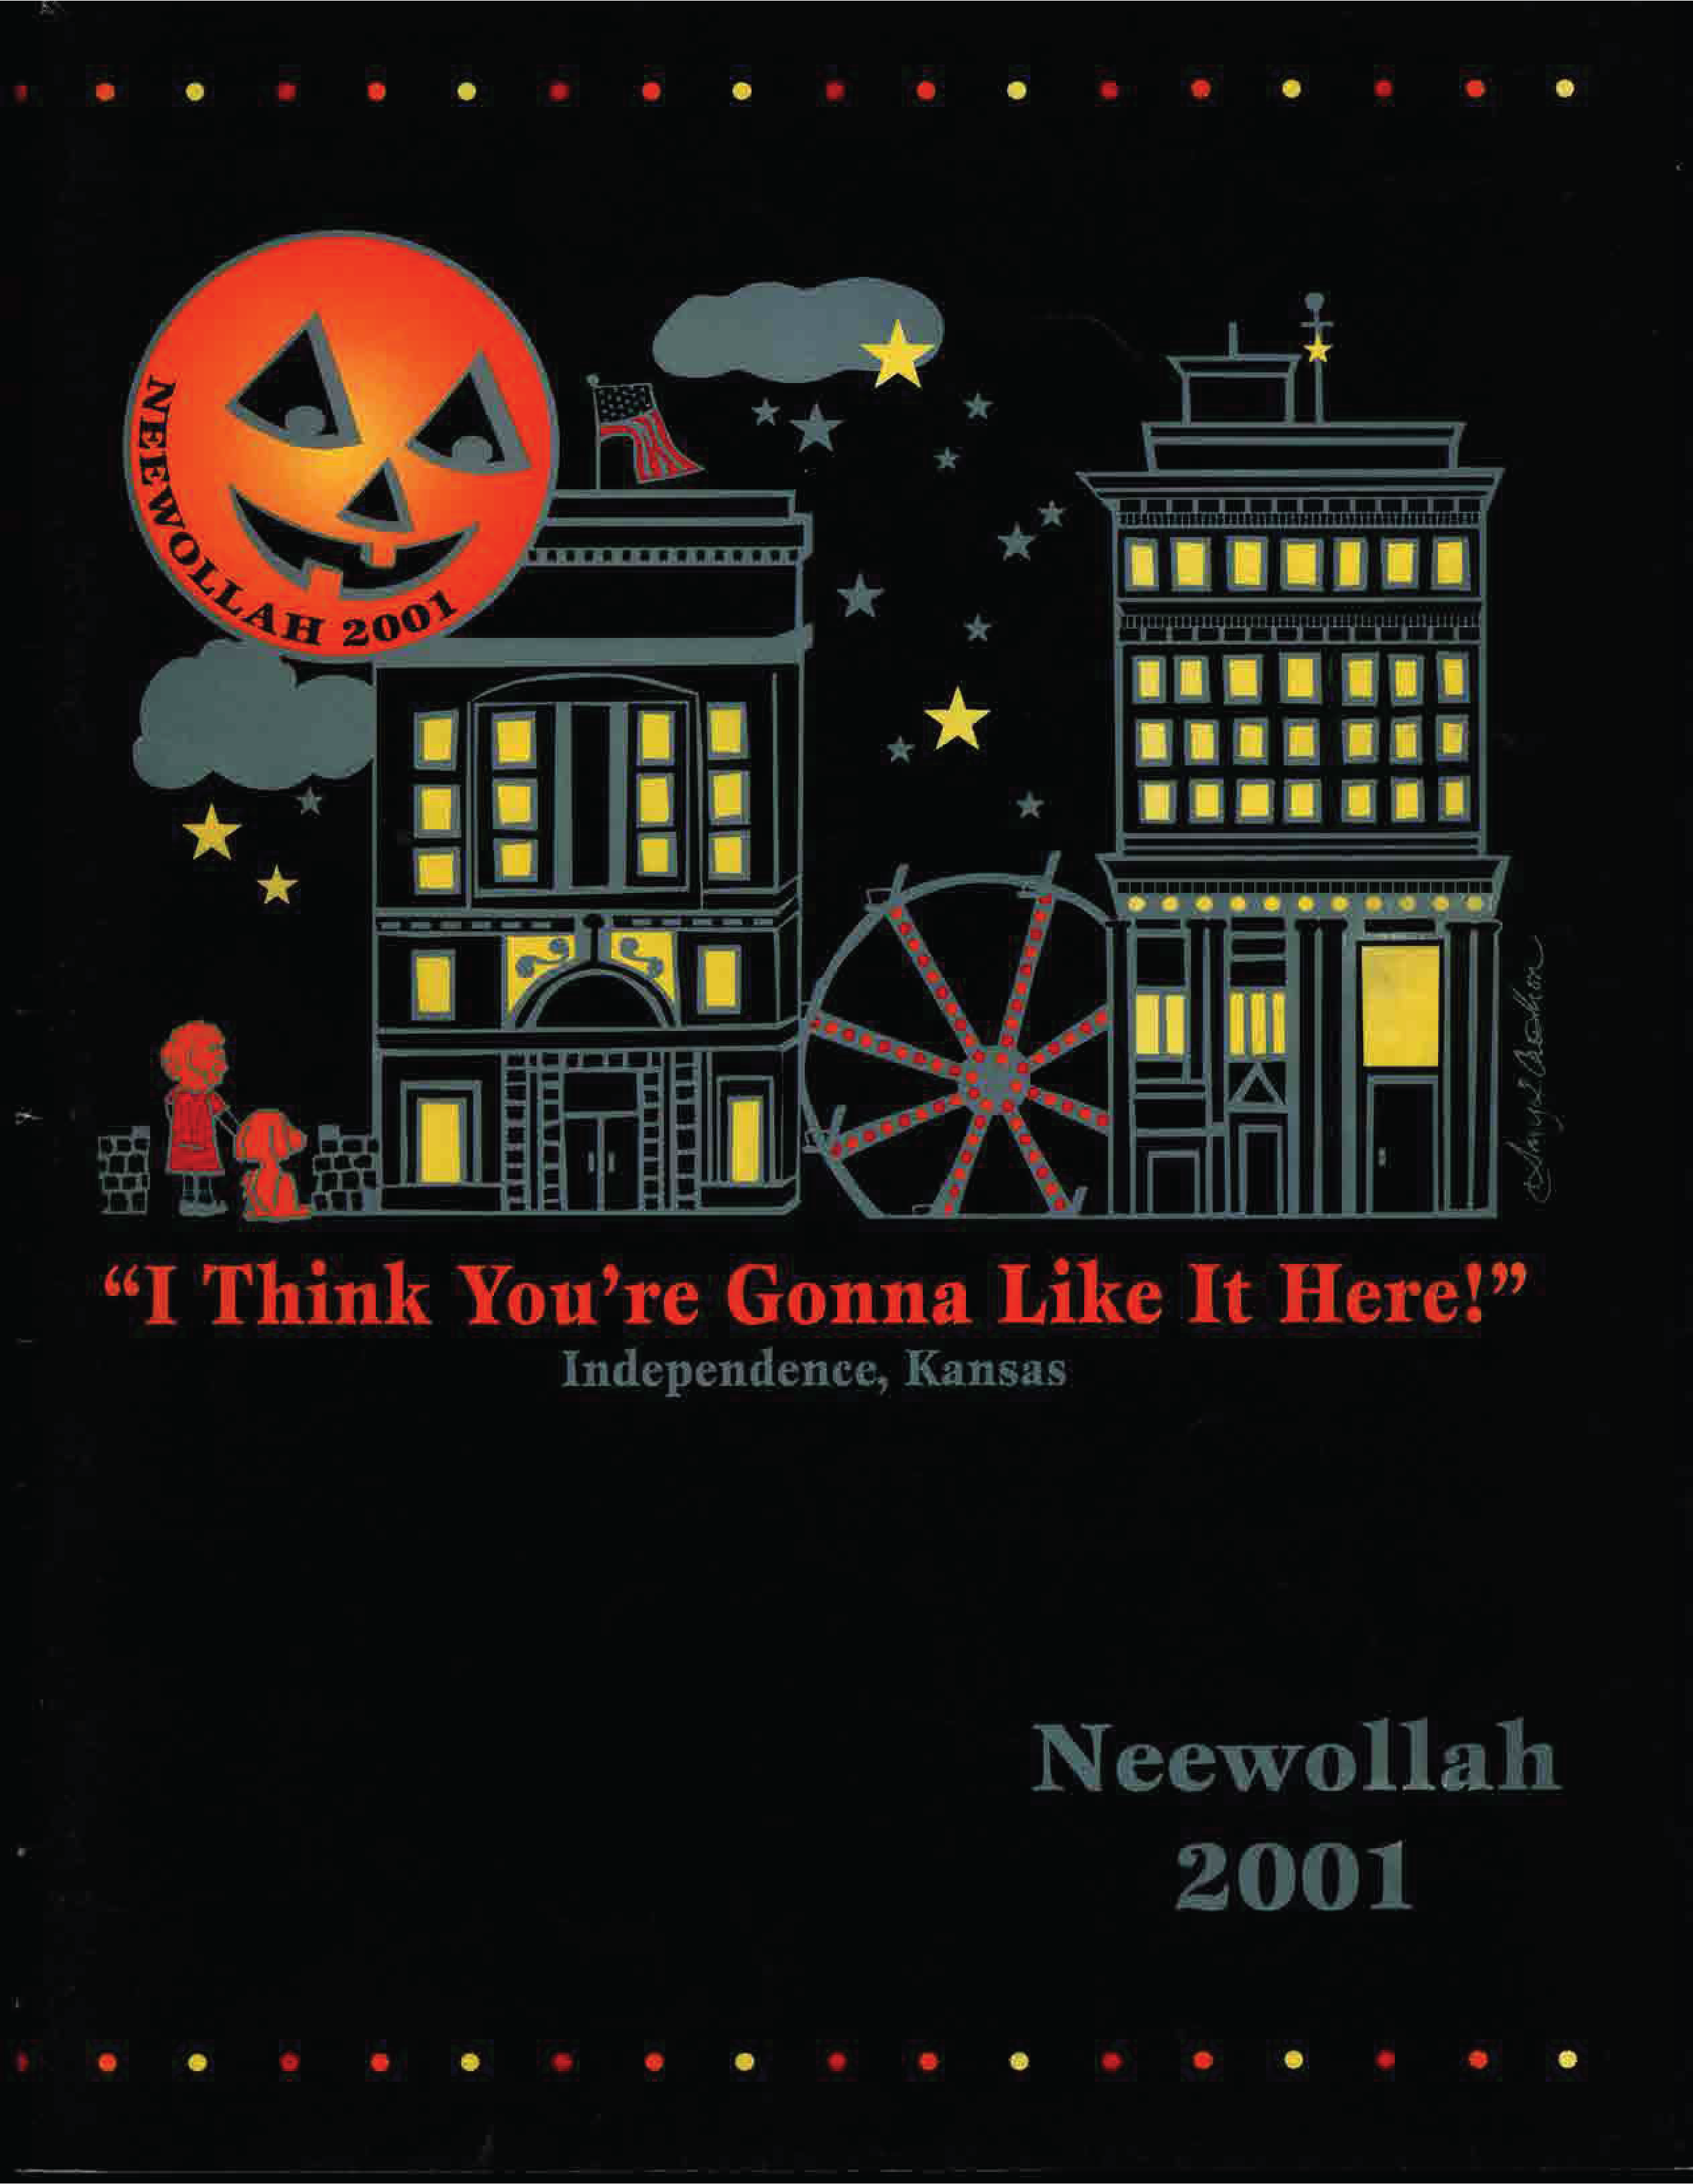 Neewollah 2001 I Think You're Gonna Like It Here